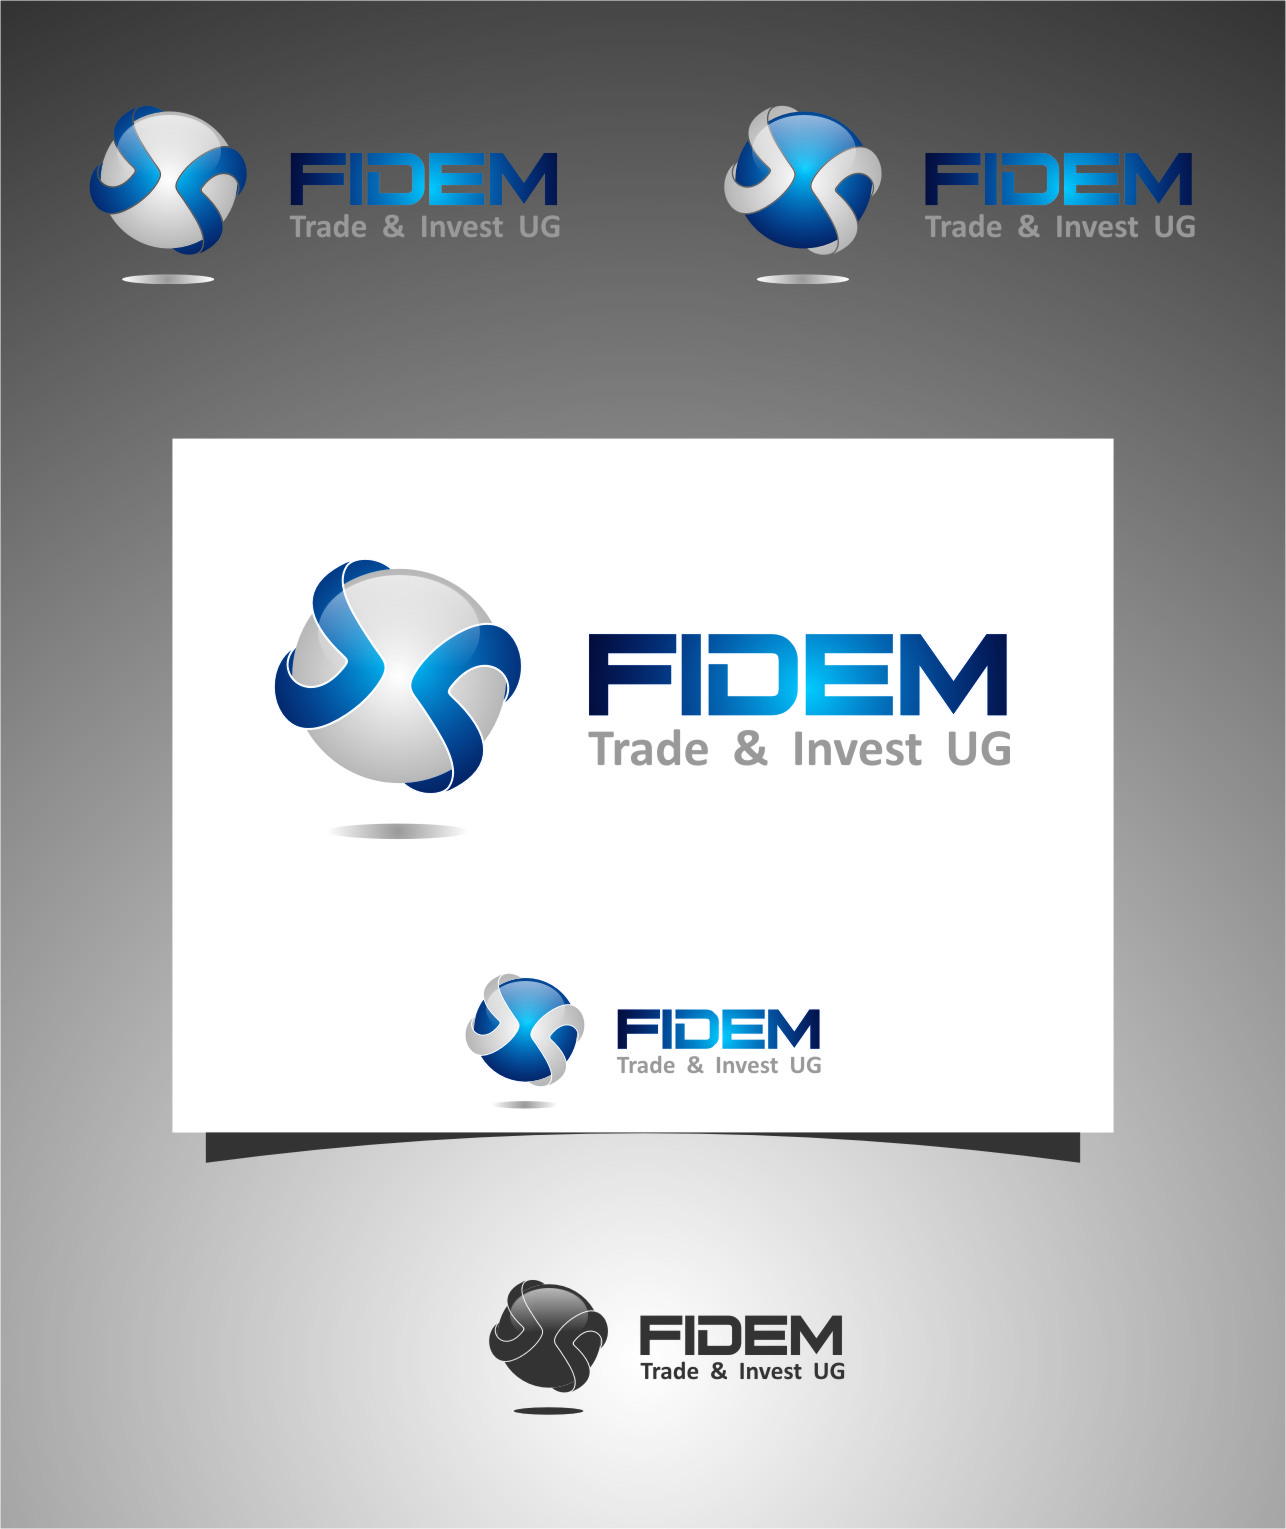 Logo Design by Ngepet_art - Entry No. 195 in the Logo Design Contest Professional Logo Design for FIDEM Trade & Invest UG.